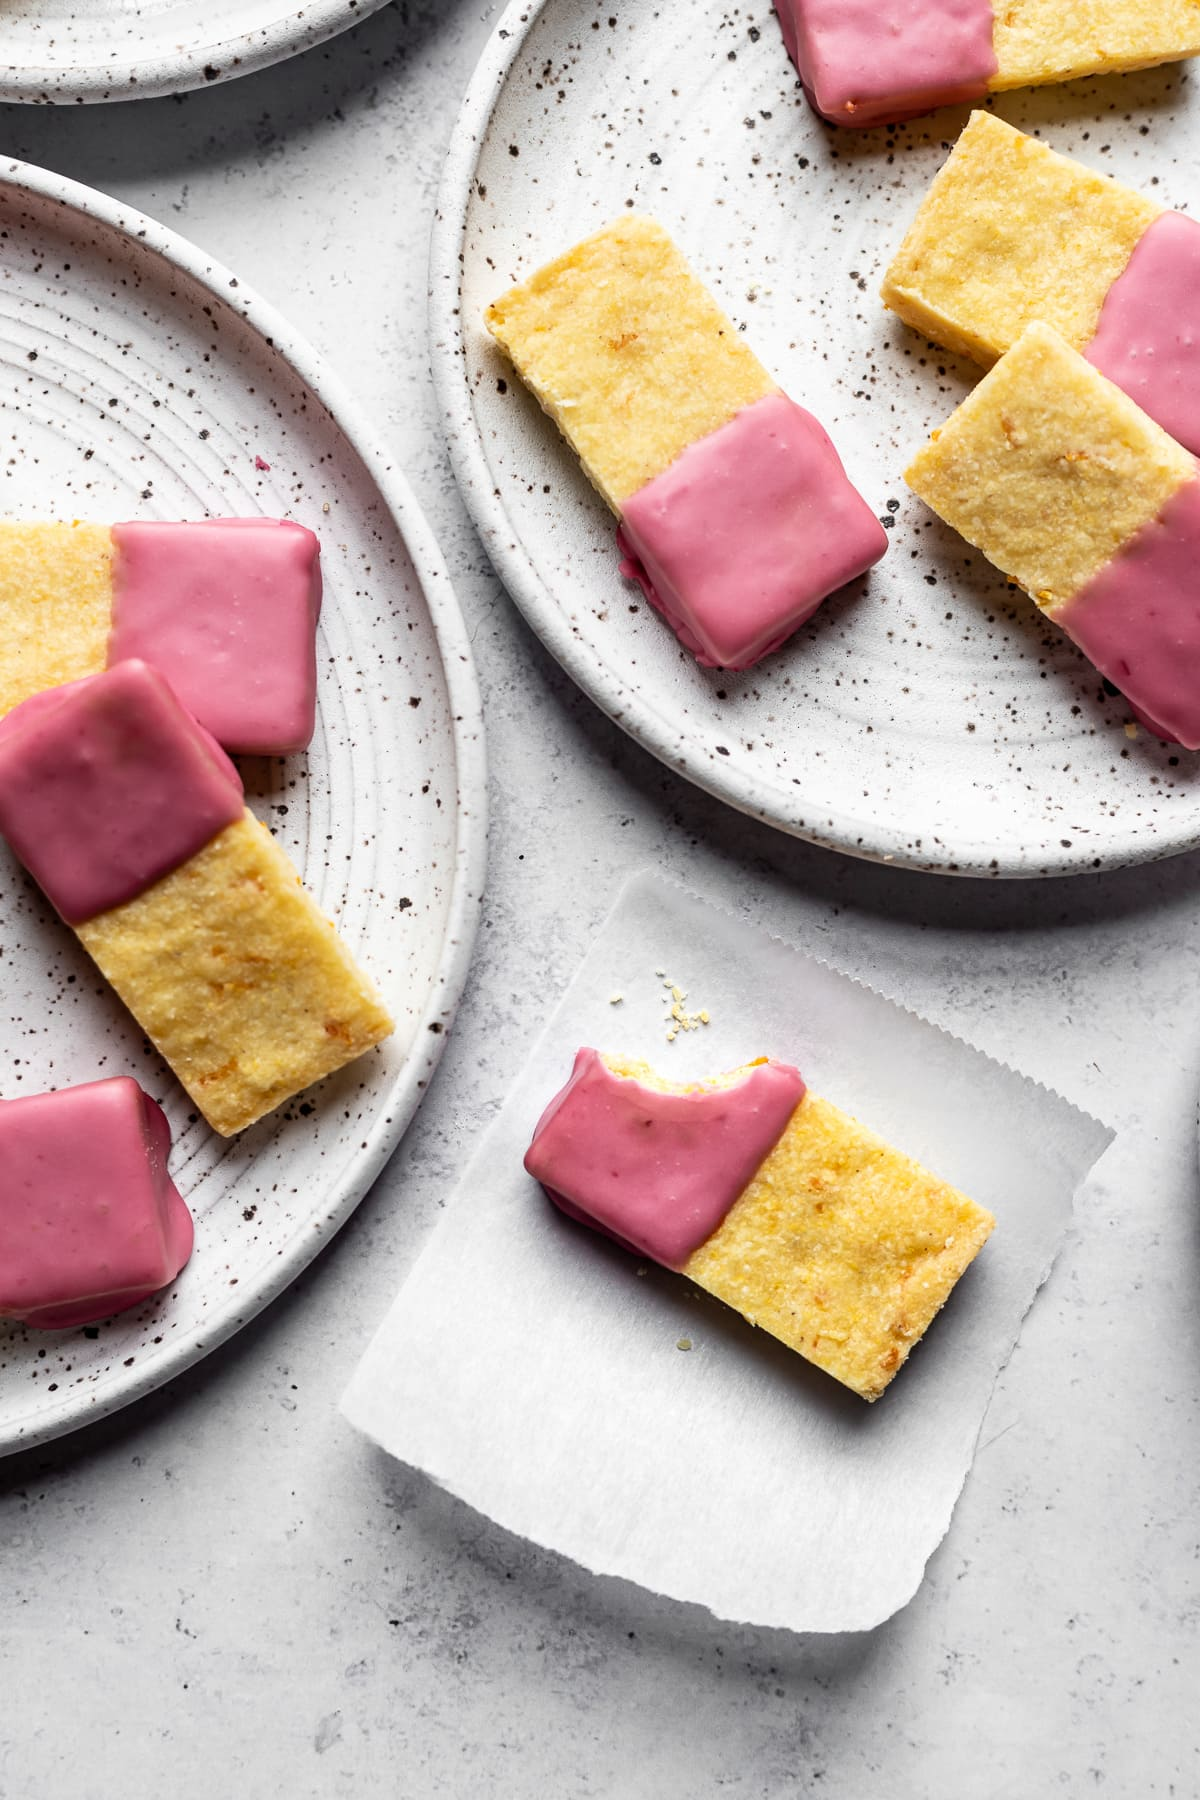 Glazed shortbread bars on white speckled plates with a bite taken out of one bar